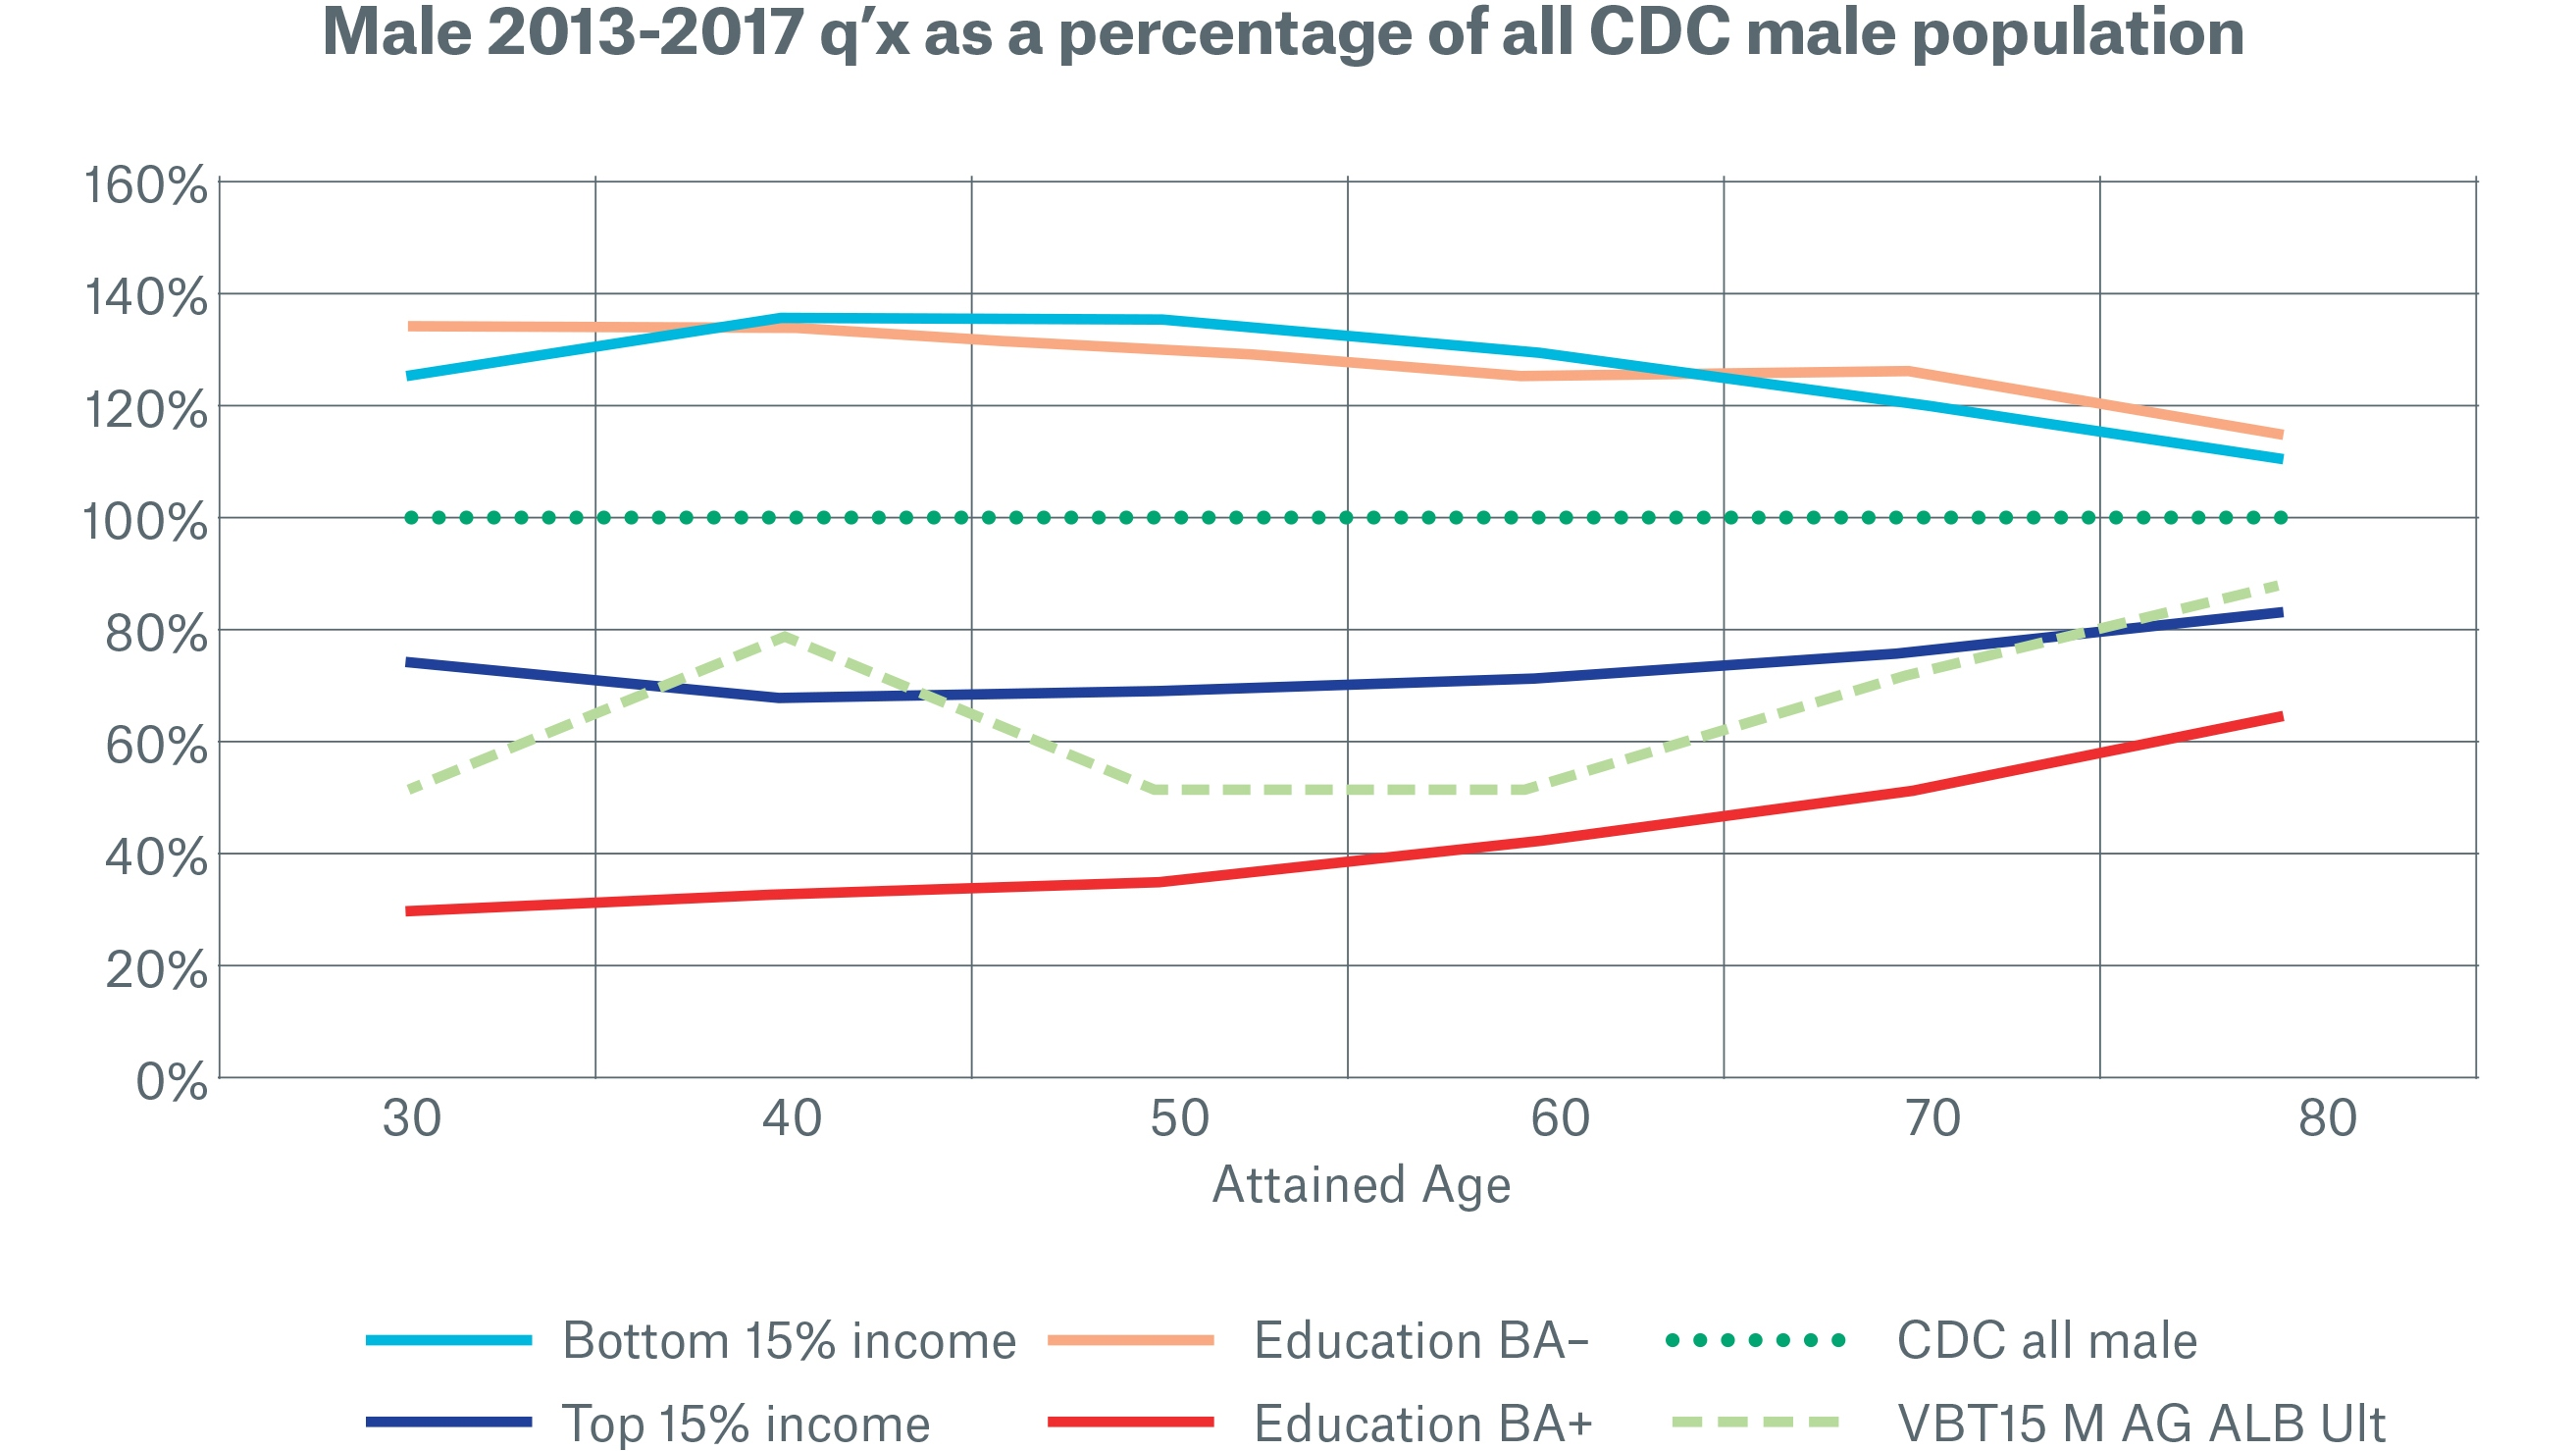 Male 2013-2017 q'x as a percentage of all CDC male population